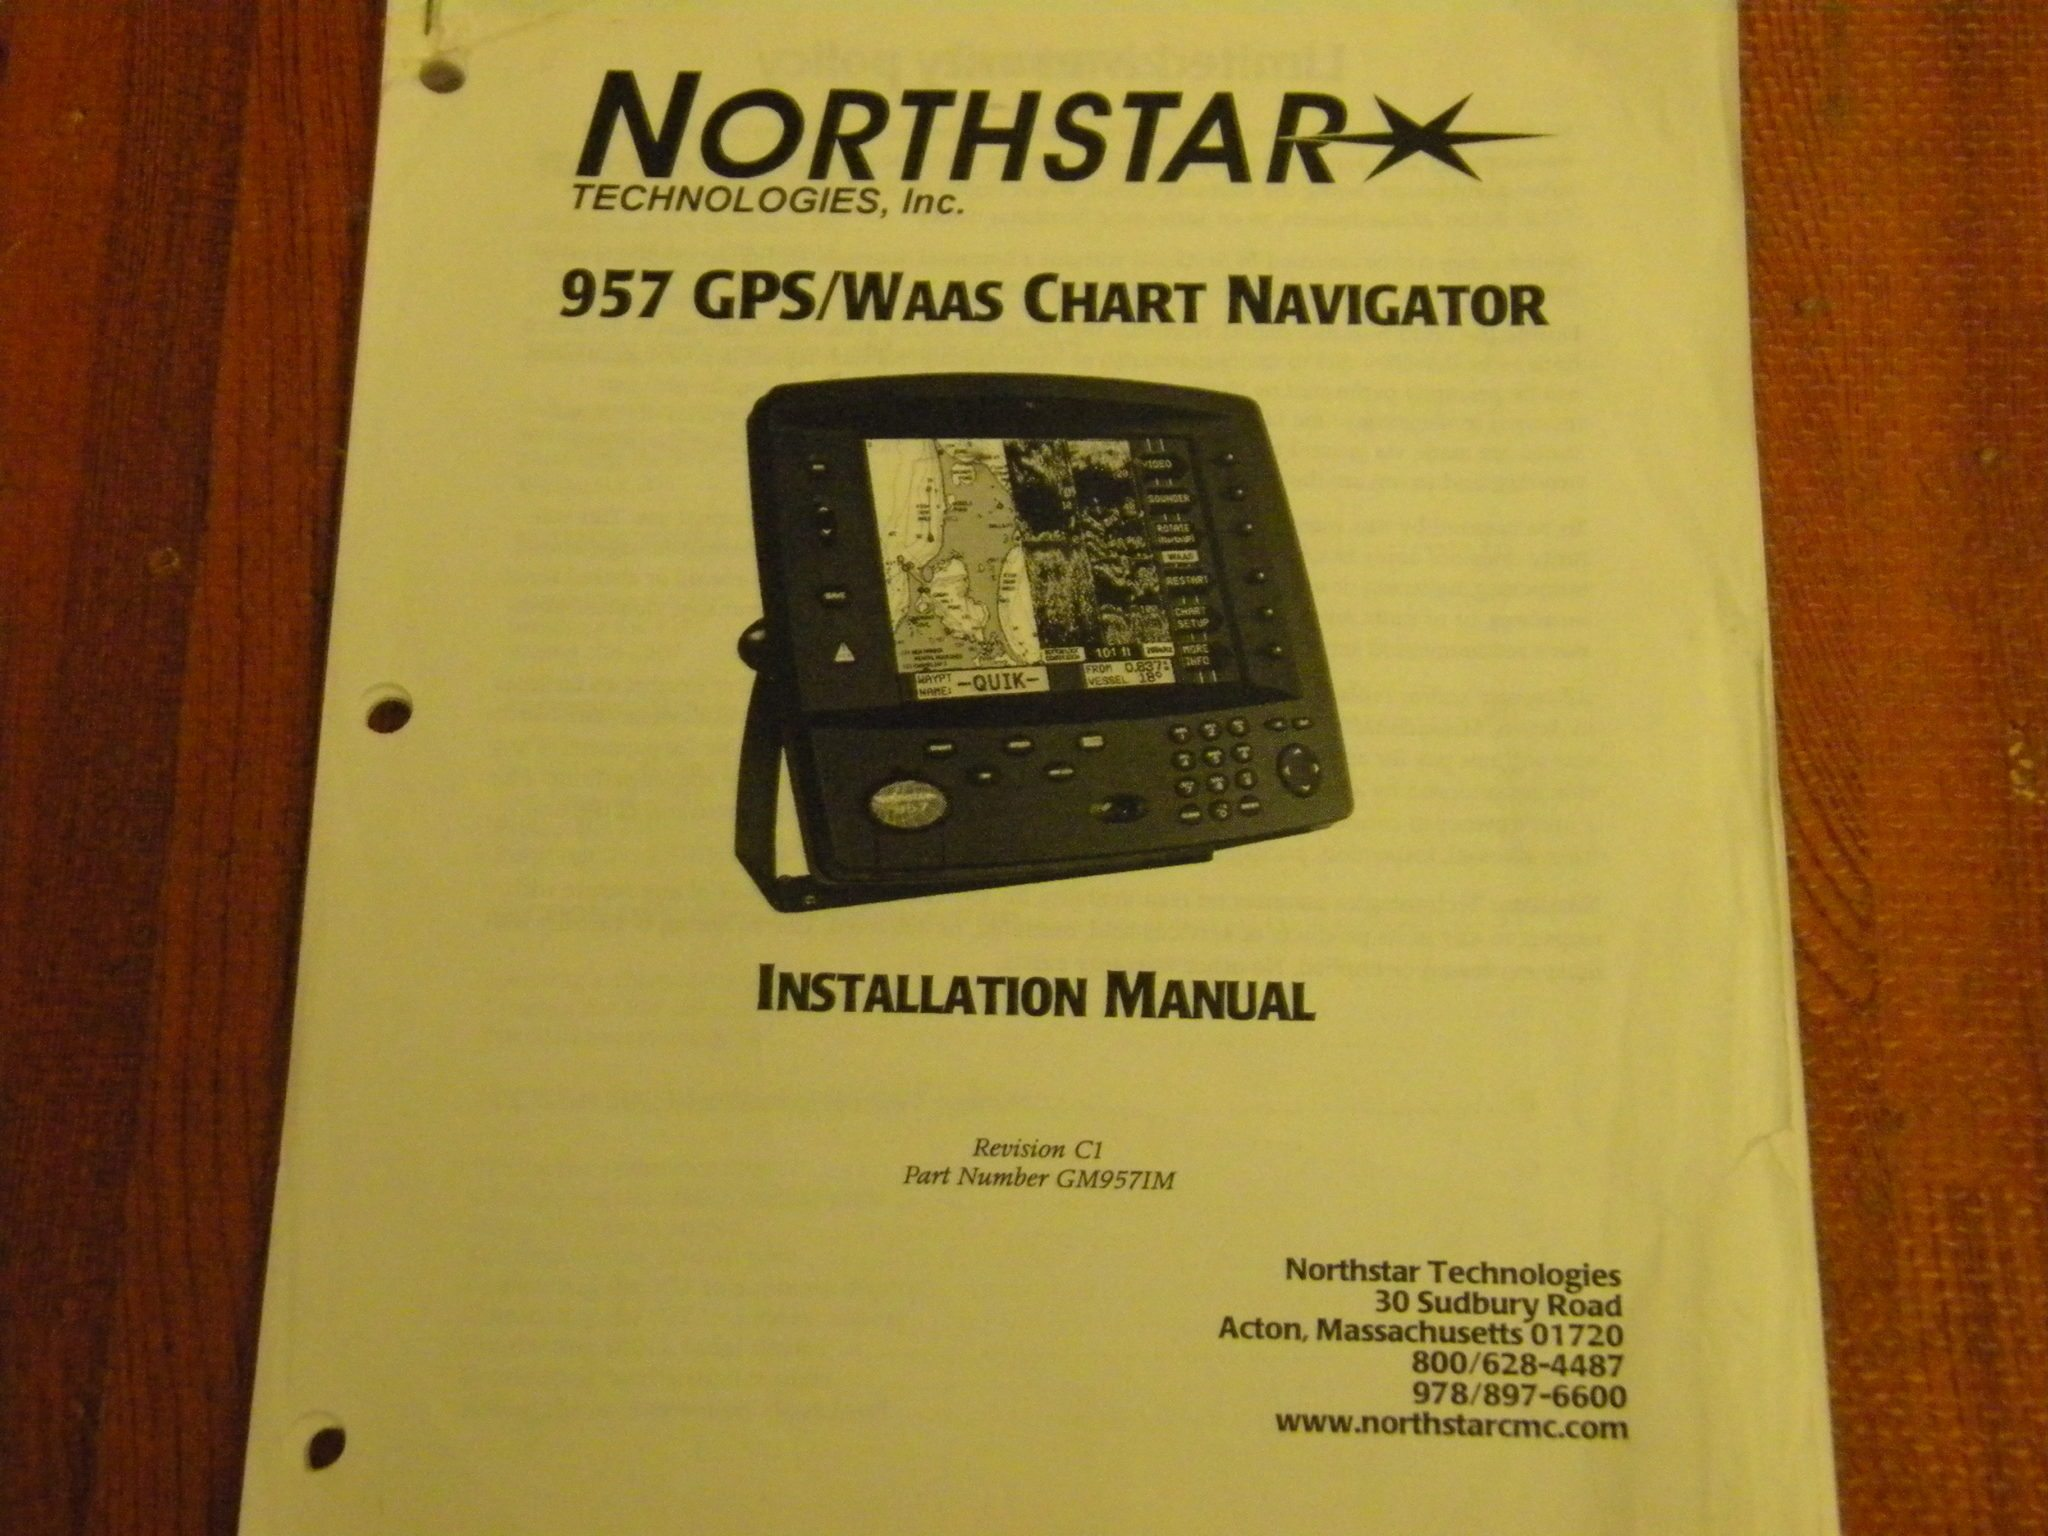 northstar 957 gps waas chart navigator installation manual rev c1 pn rh maxmarineelectronics com northstar 6000i gps manual northstar m3 gps manual